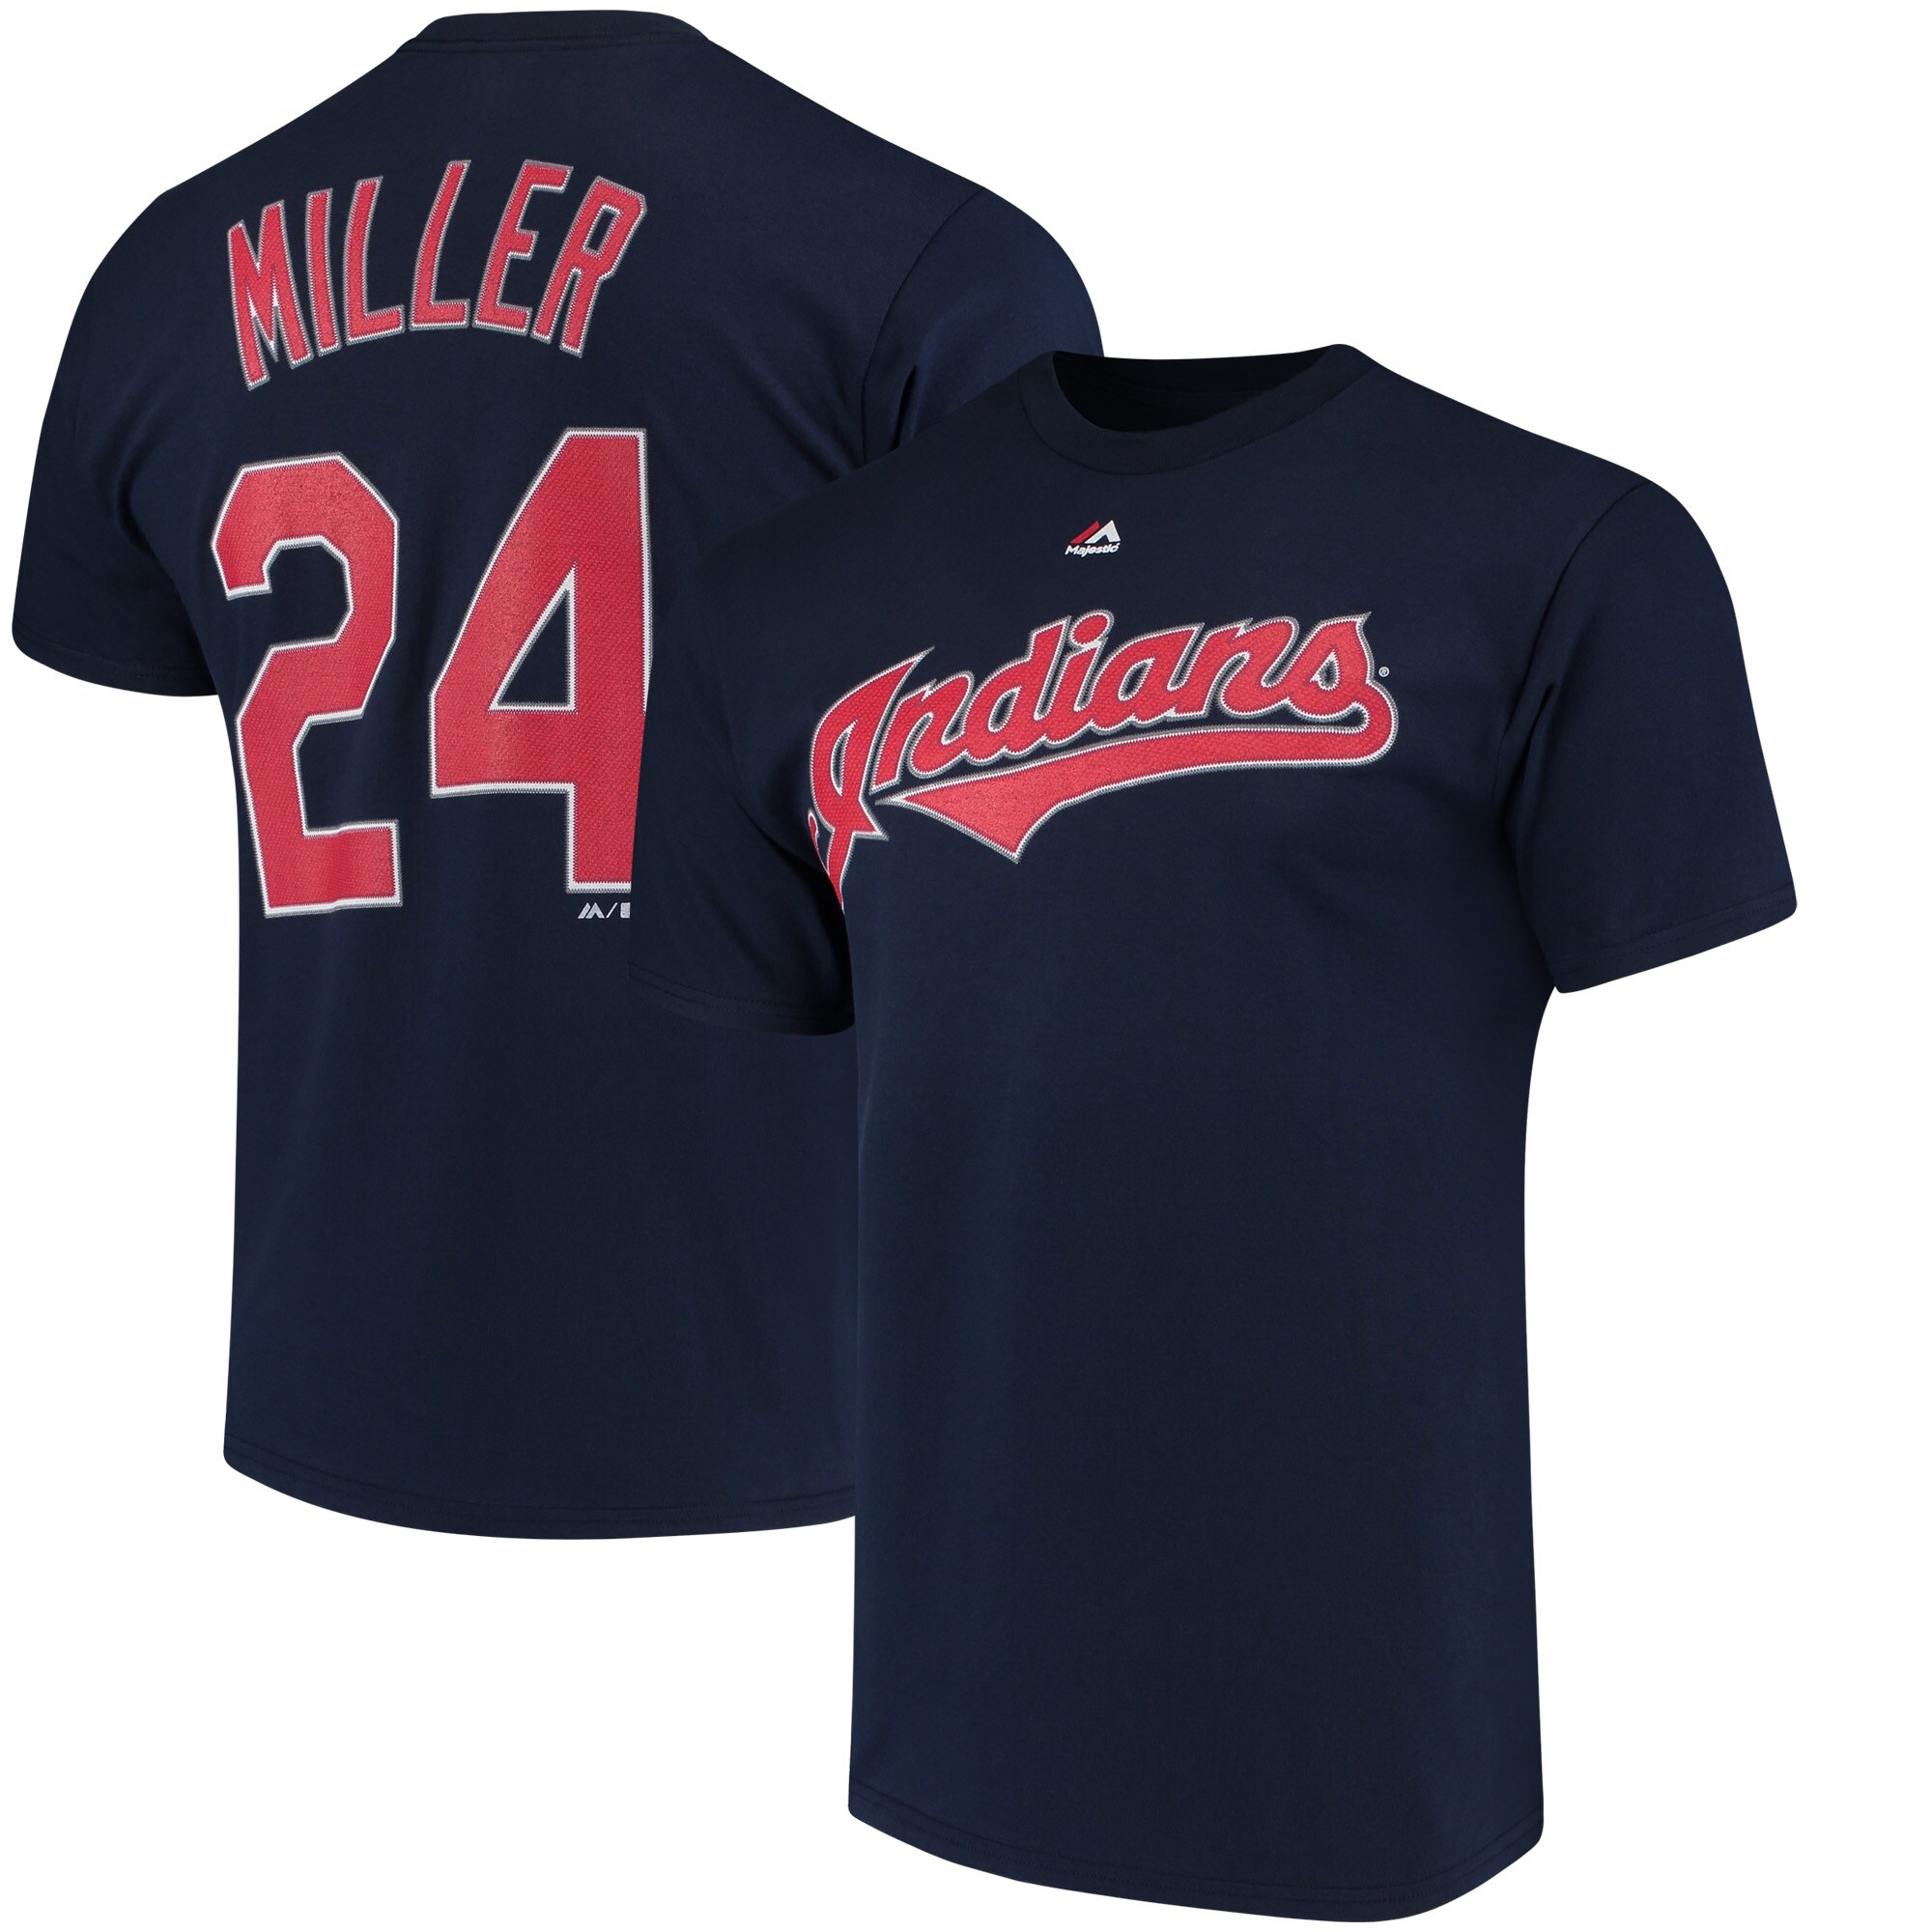 Andrew Miller Cleveland Indians Majestic Official Name & Number T-Shirt - Navy